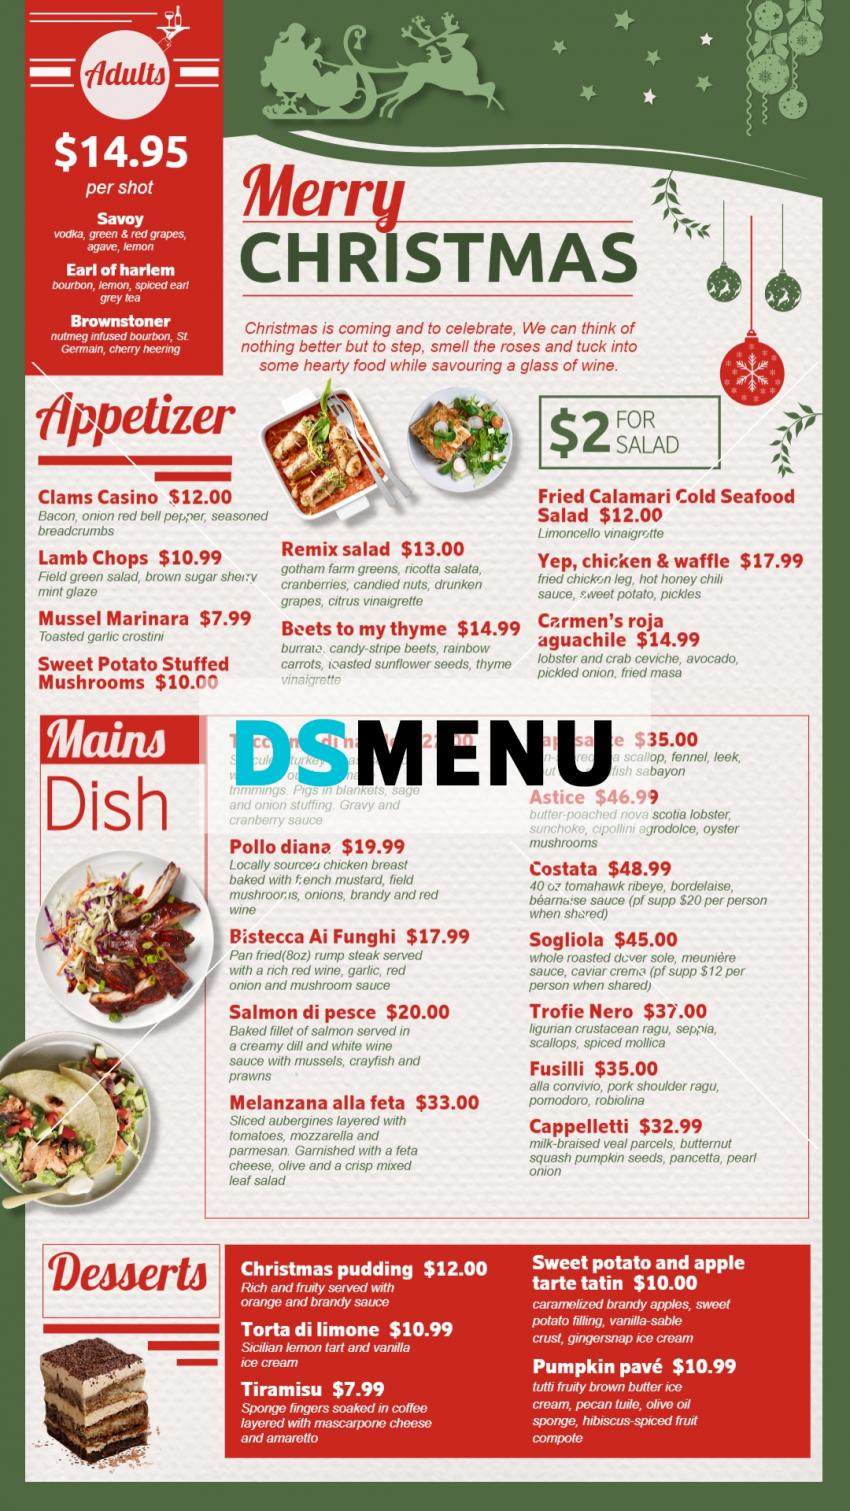 Vertical Christmas menu board for digital signage